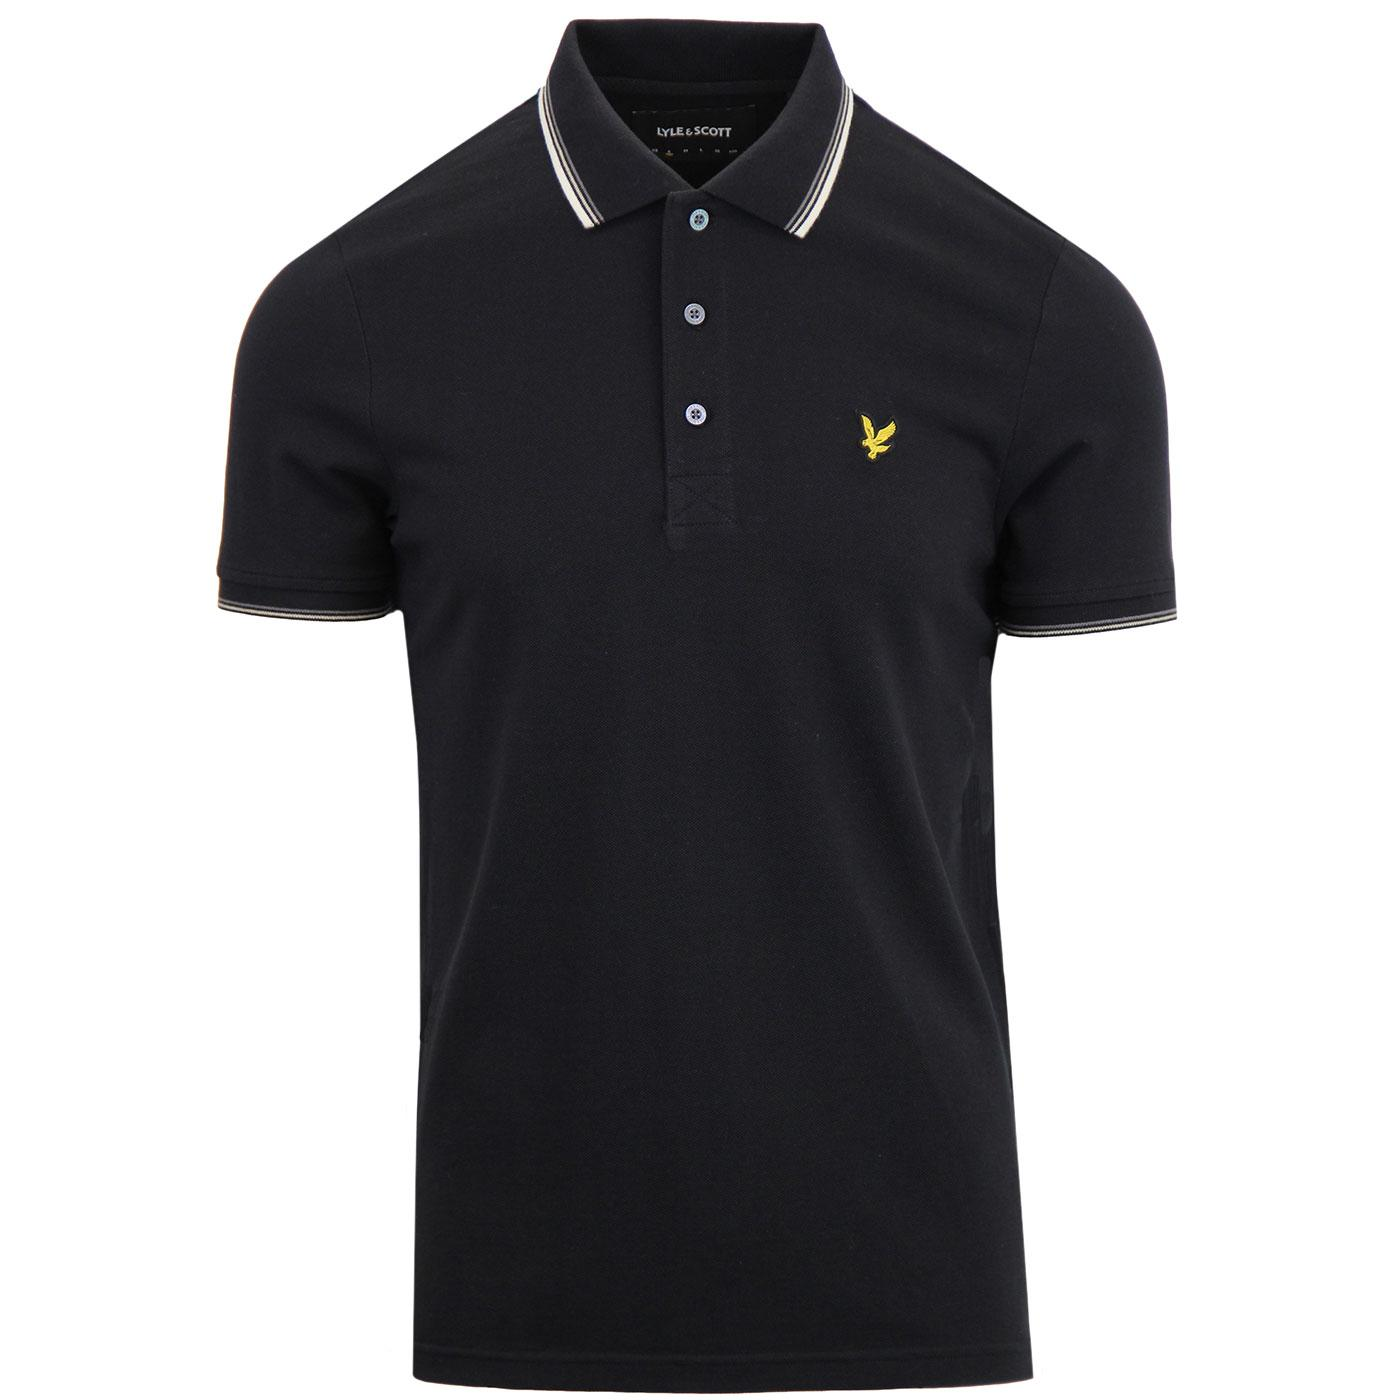 LYLE & SCOTT Retro Tipped Pique Polo Top (Black)